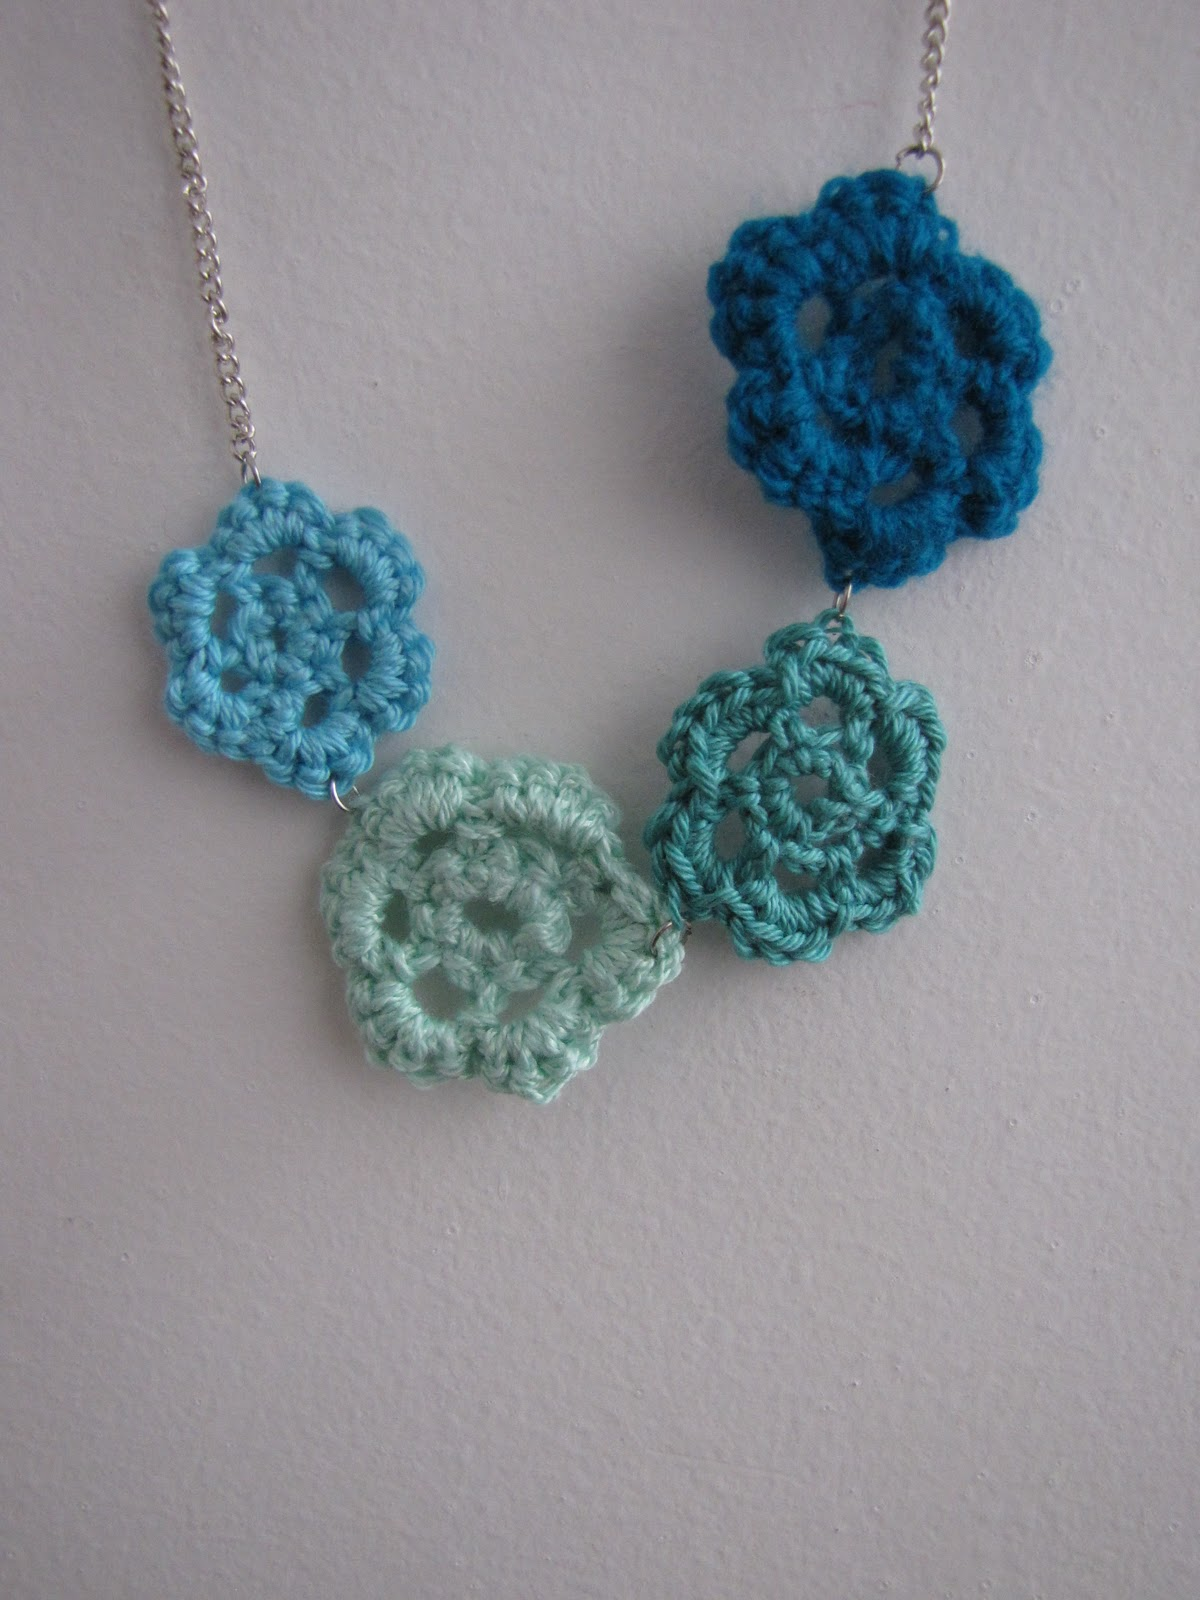 Little Treasures: A new crochet flower necklace in the shop